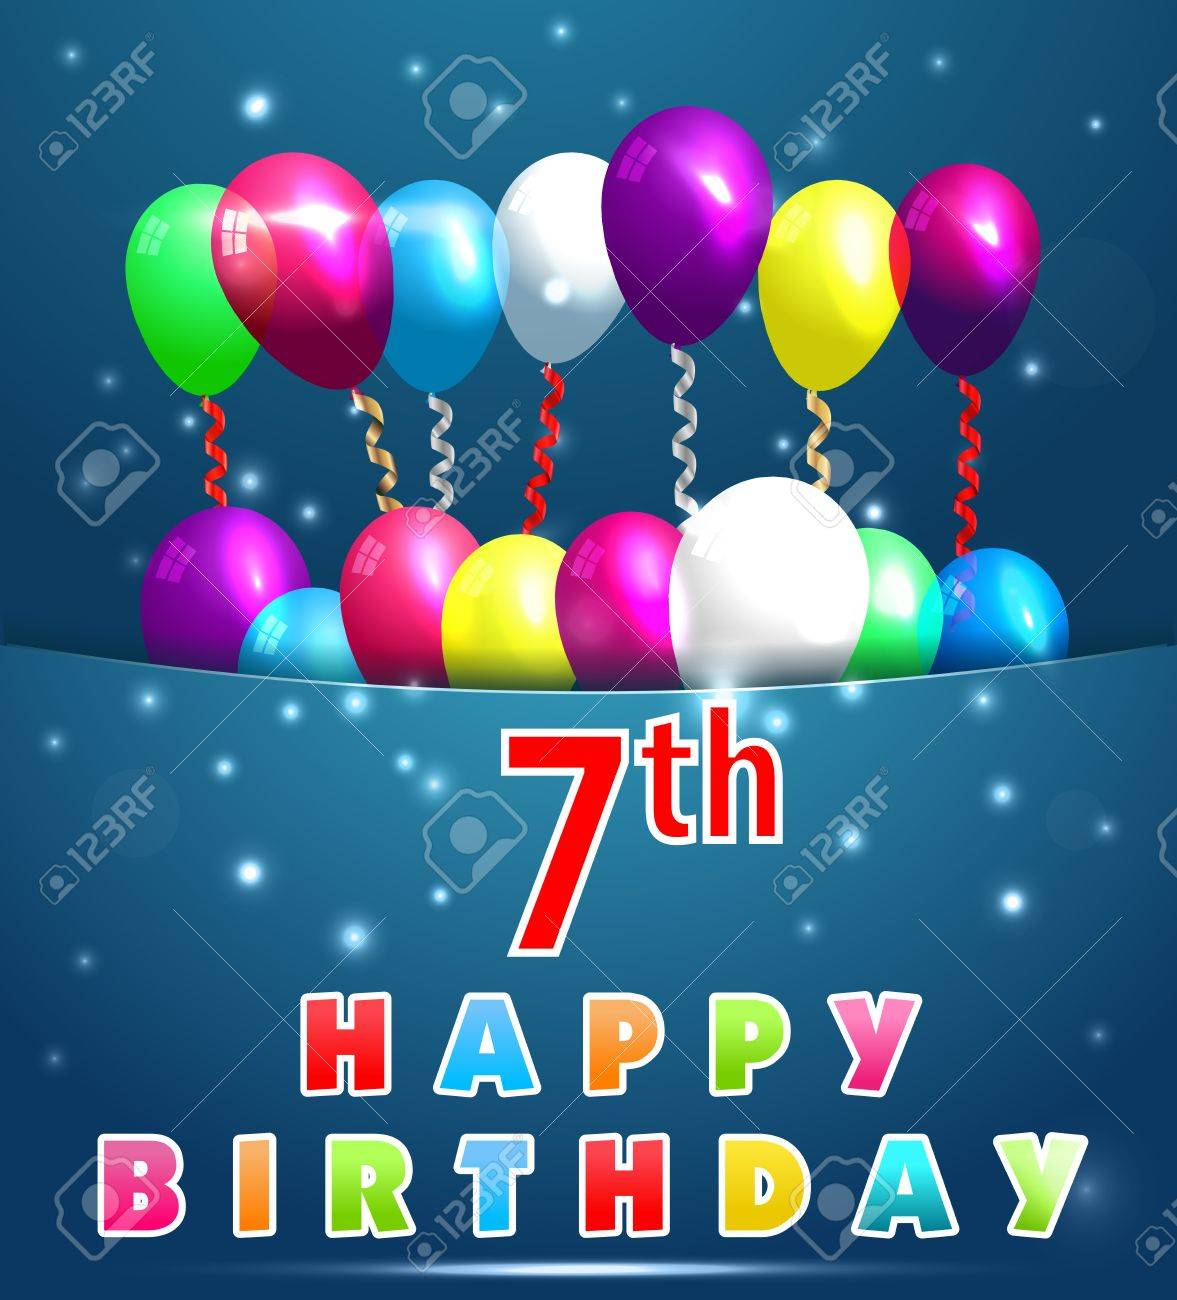 7 Year Happy Birthday Card With Balloons And Ribbons 7th Birthday